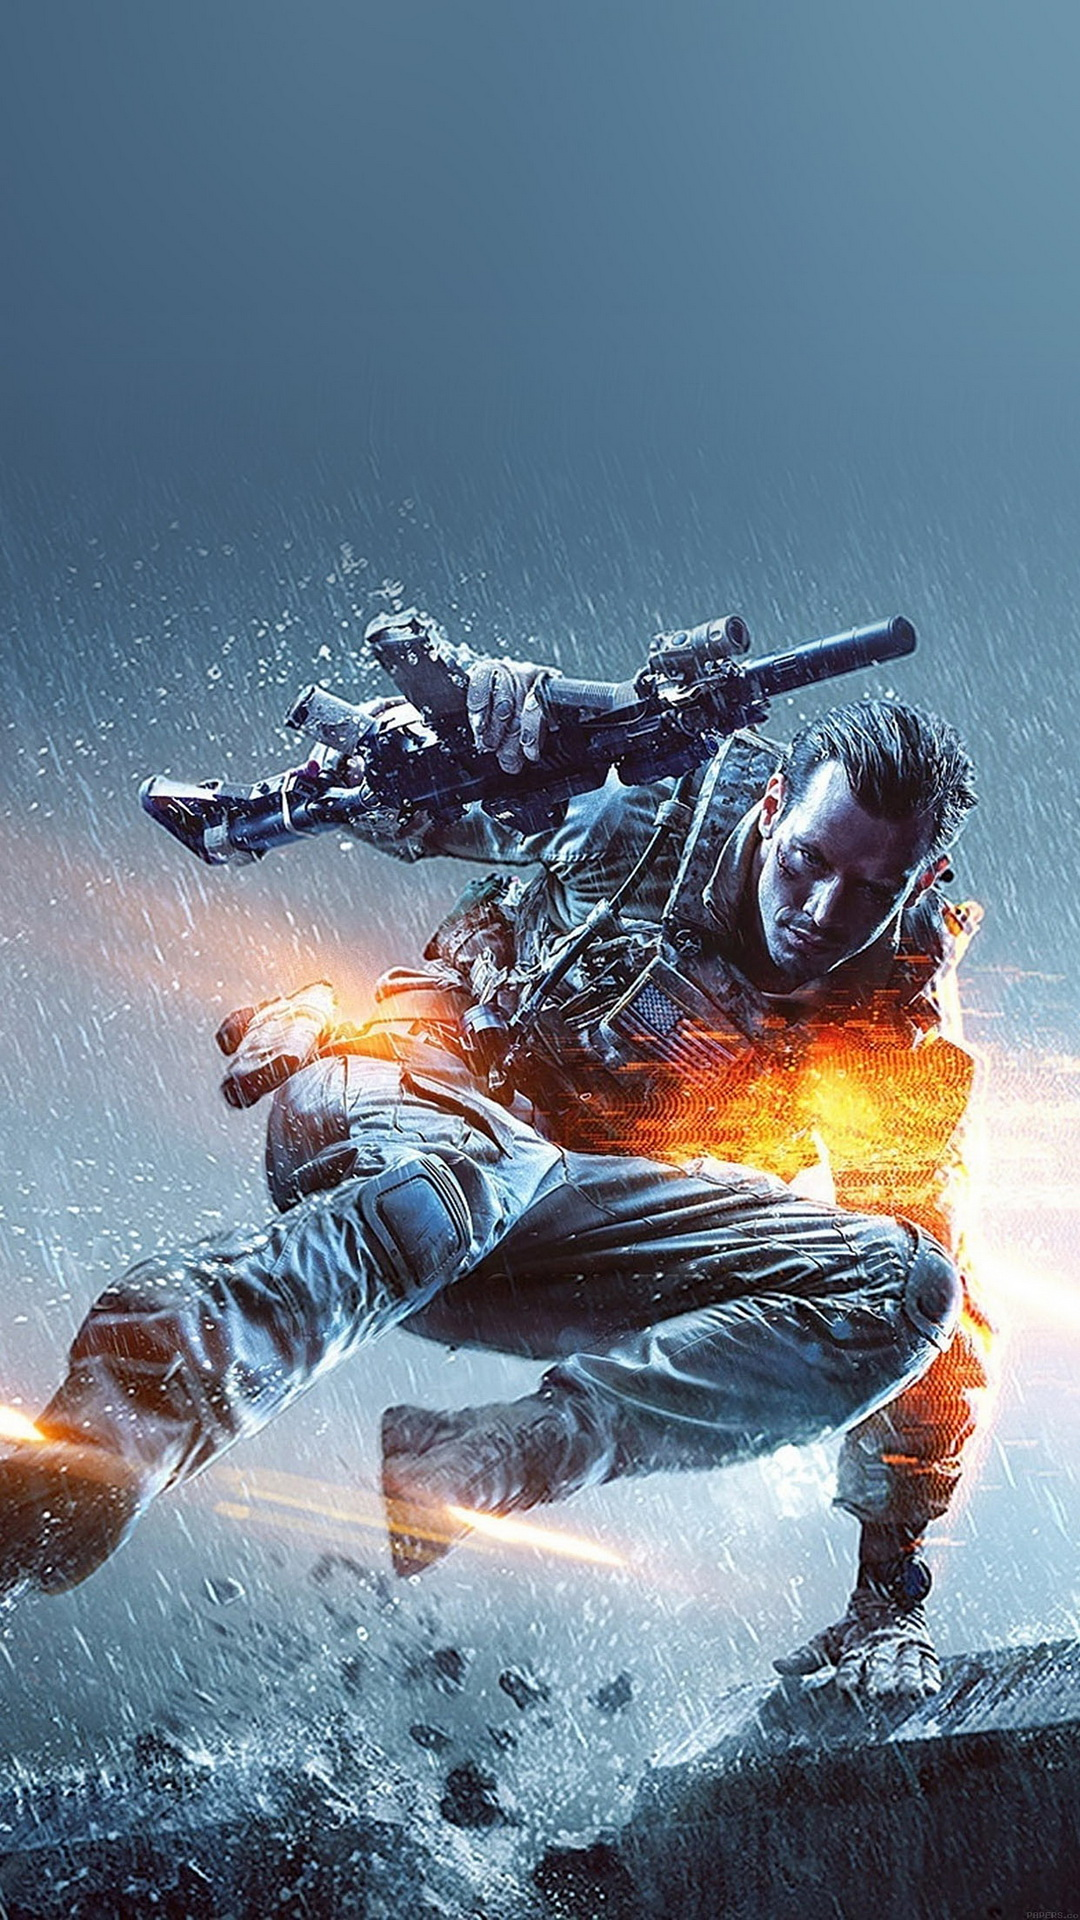 Ios 11 Hd Wallpaper Battlefield 4 Jump Best Htc M9 Wallpapers